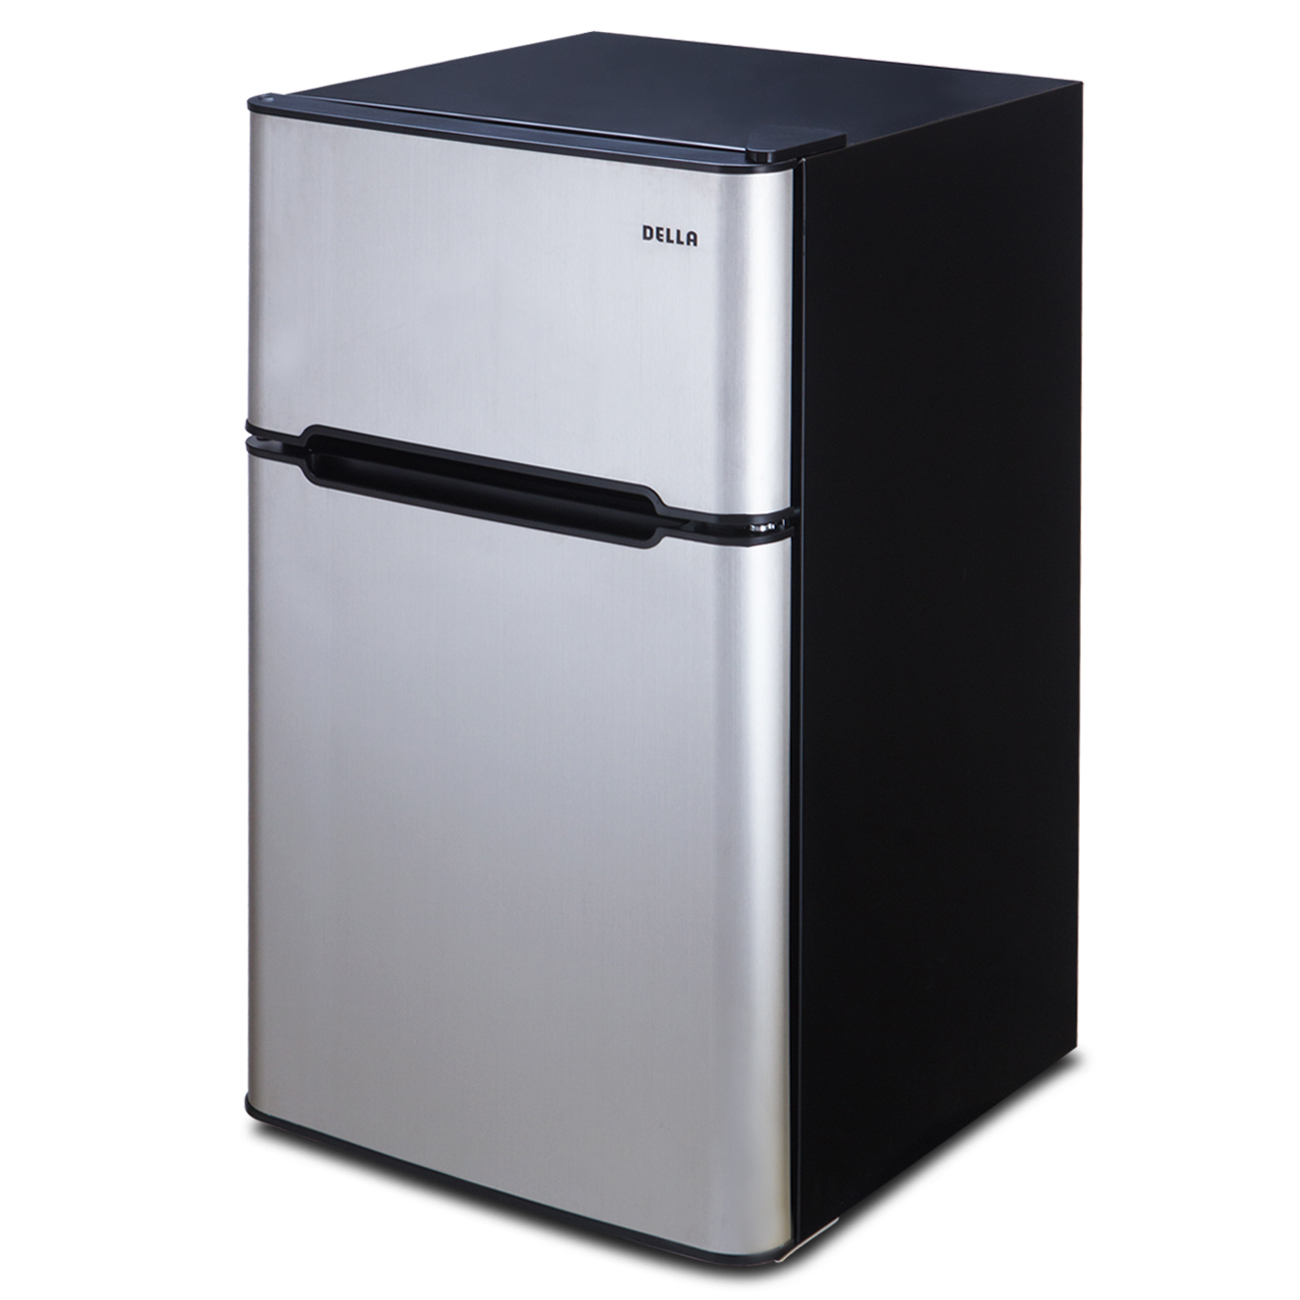 New compact 3 2 cu ft fridge mini dorm office refrigerator for Small room fridge